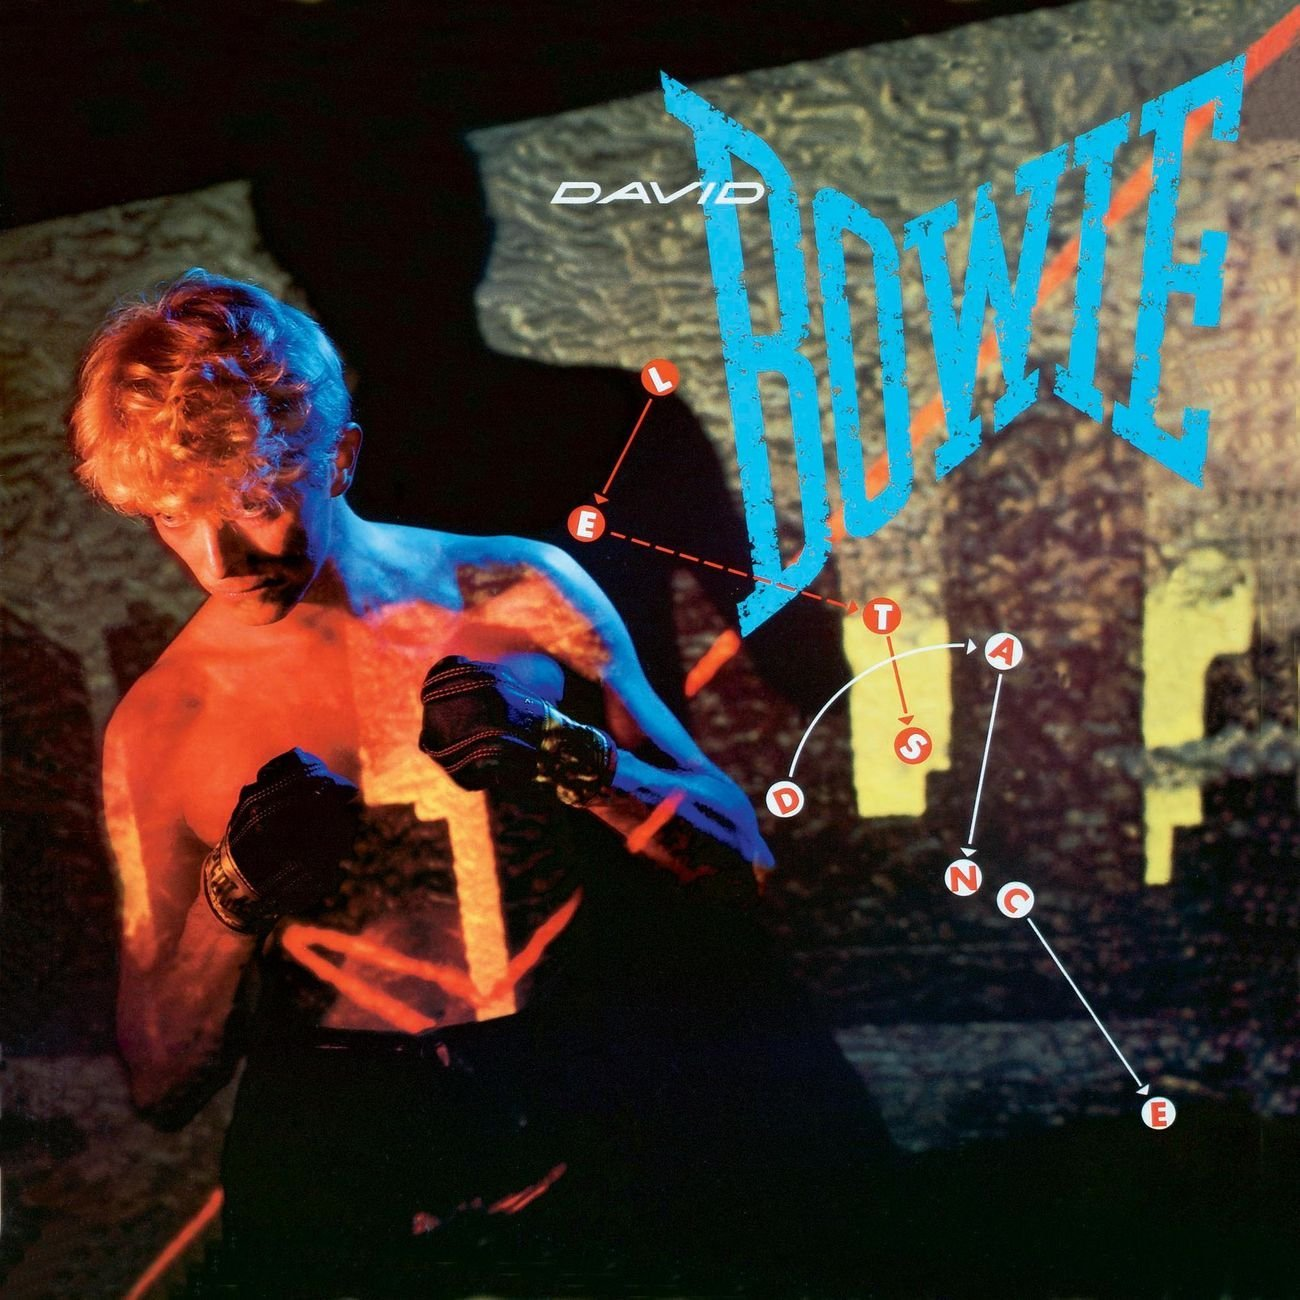 David Bowie - Lets Dance